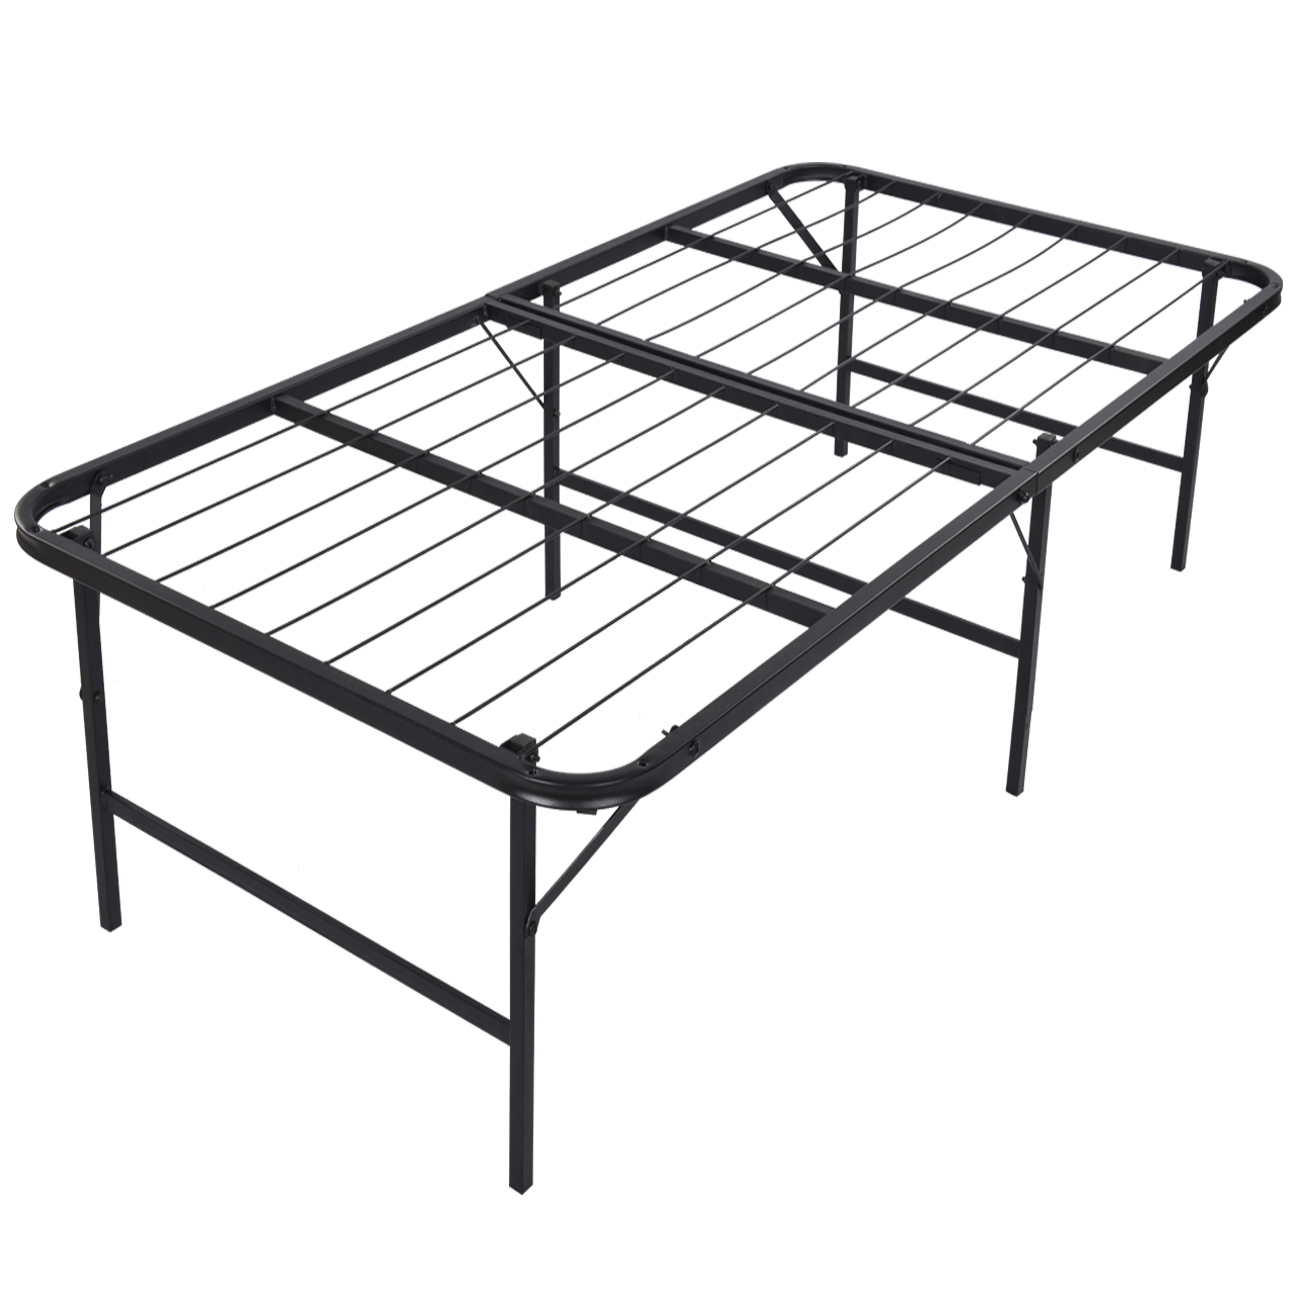 foldable bed frame for mattress 17 height space twin size - Fold Up Bed Frame